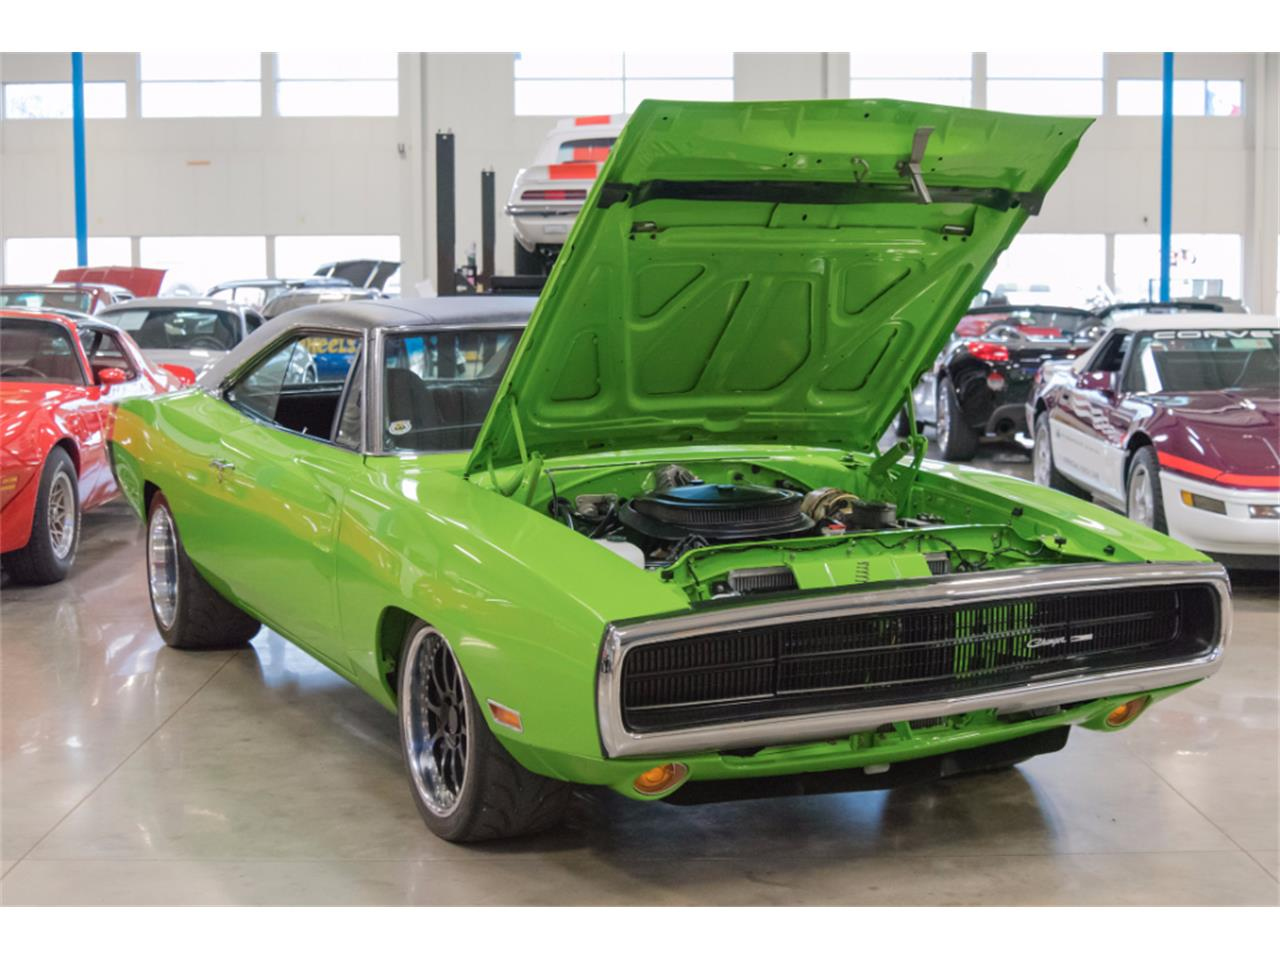 Large Picture of 1970 Dodge Charger - $135,000.00 Offered by John Kufleitner's Galleria - MB1Z